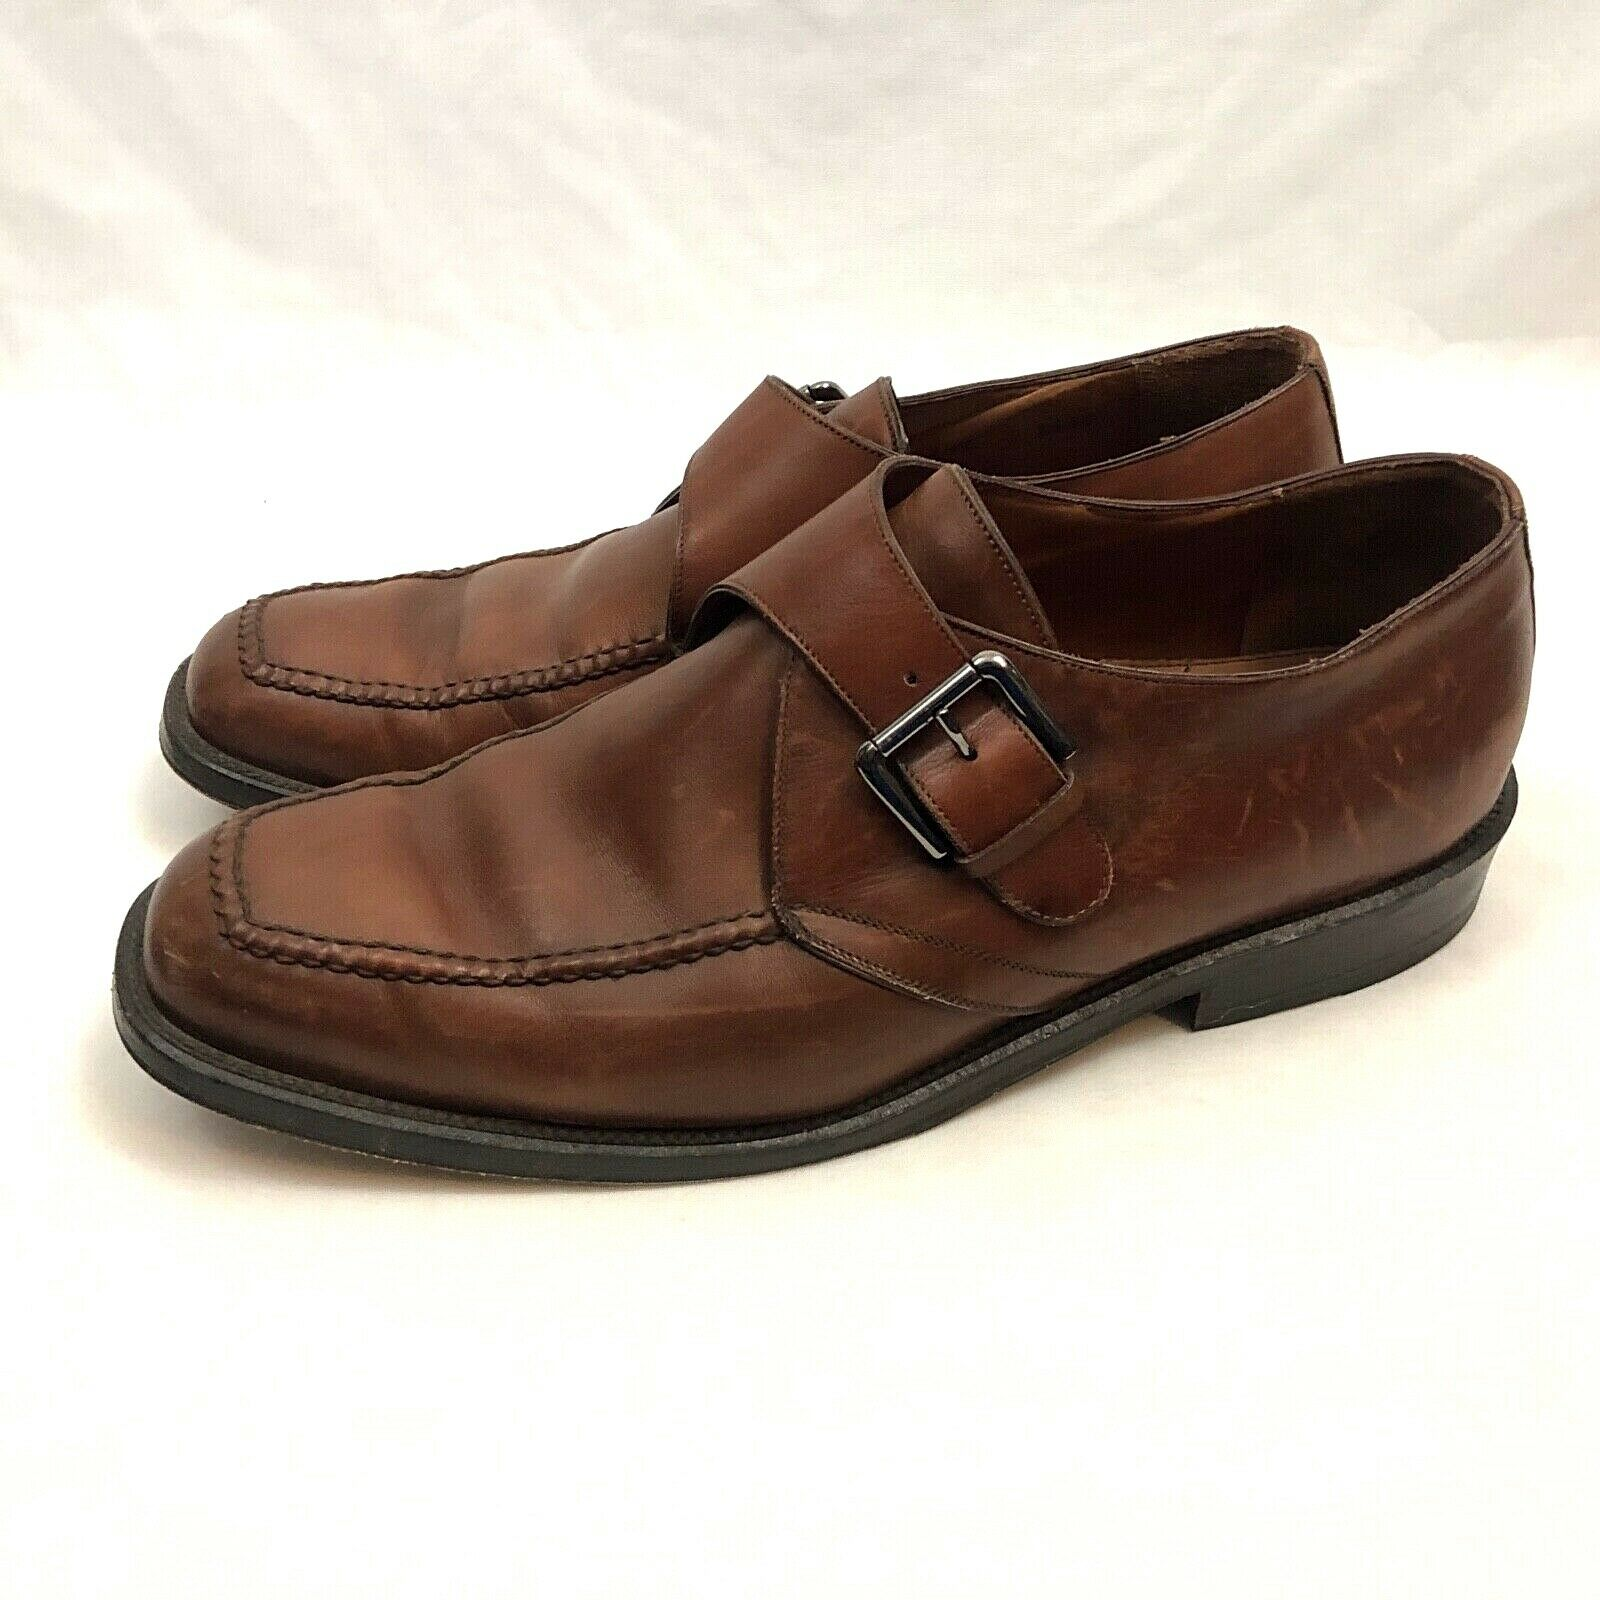 Cole Haan Buckle Dress shoes Mens US 11.5 Medium Brown Leather Slip On